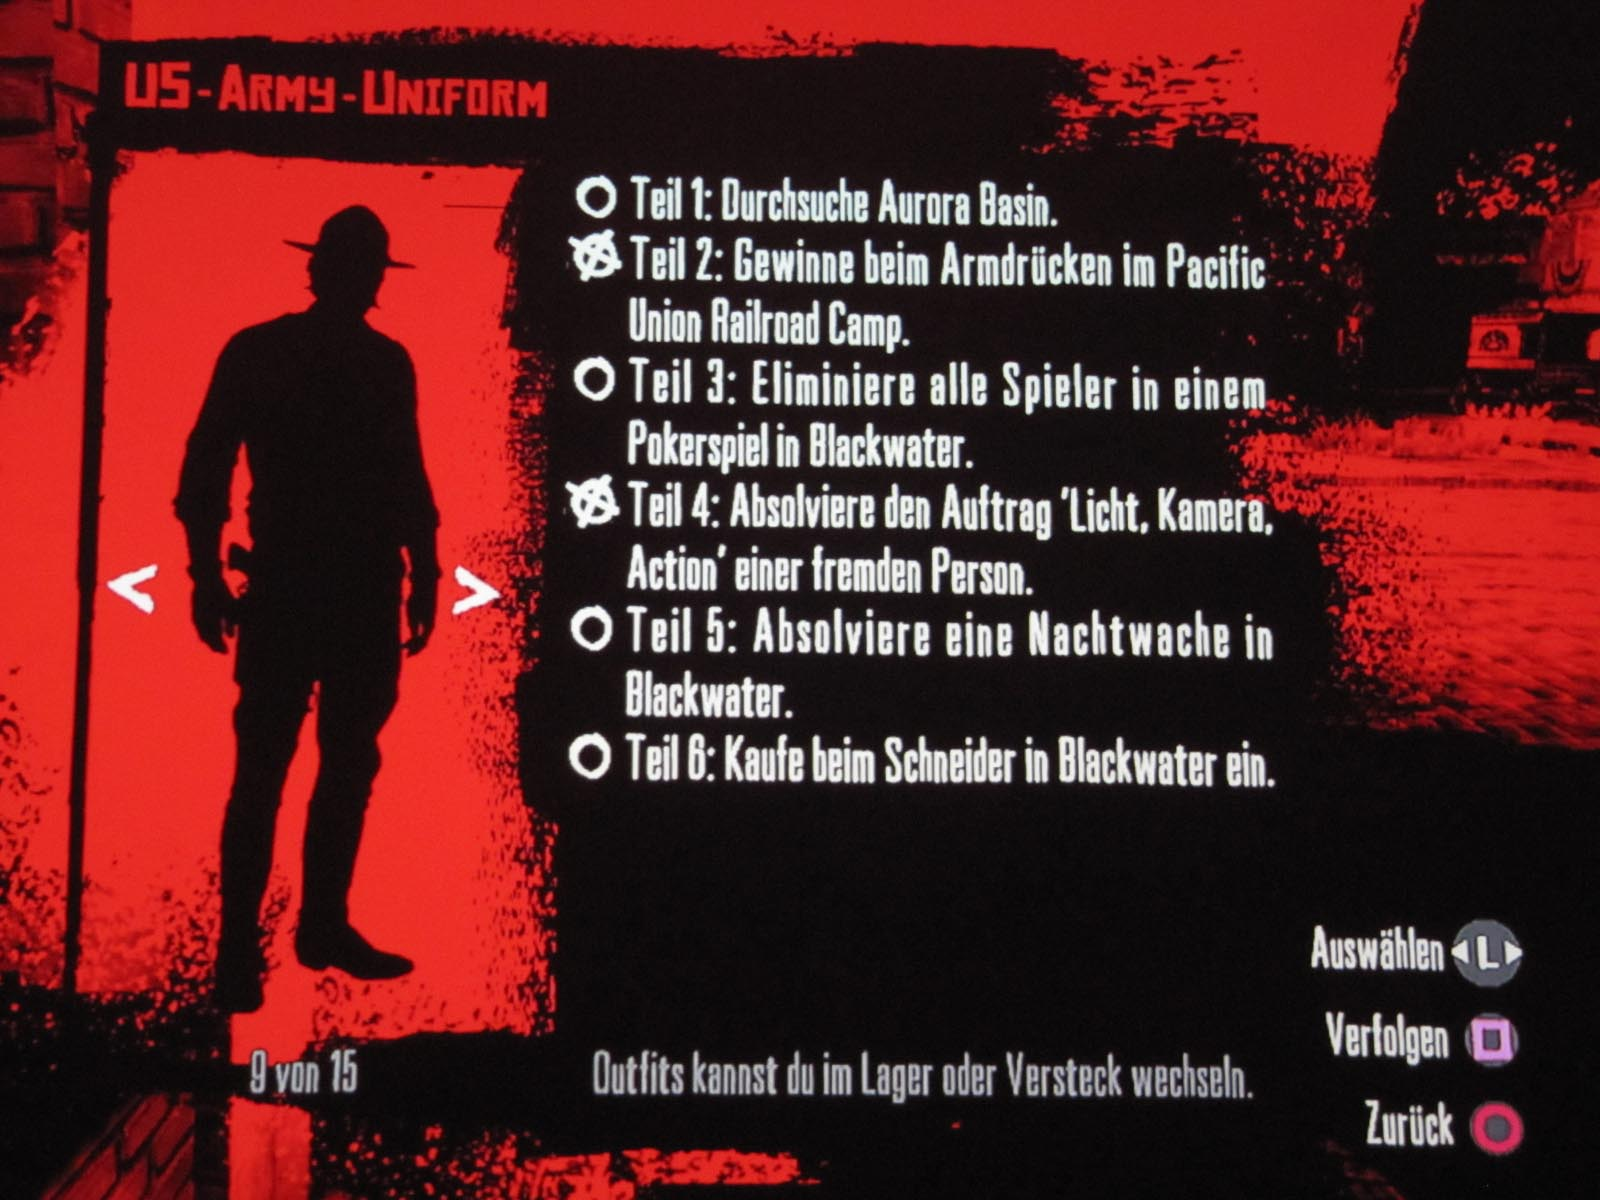 Red Dead Redemption Guide Alle Orte Bandenverstecke Tiere - Red dead redemption us marshal outfit map